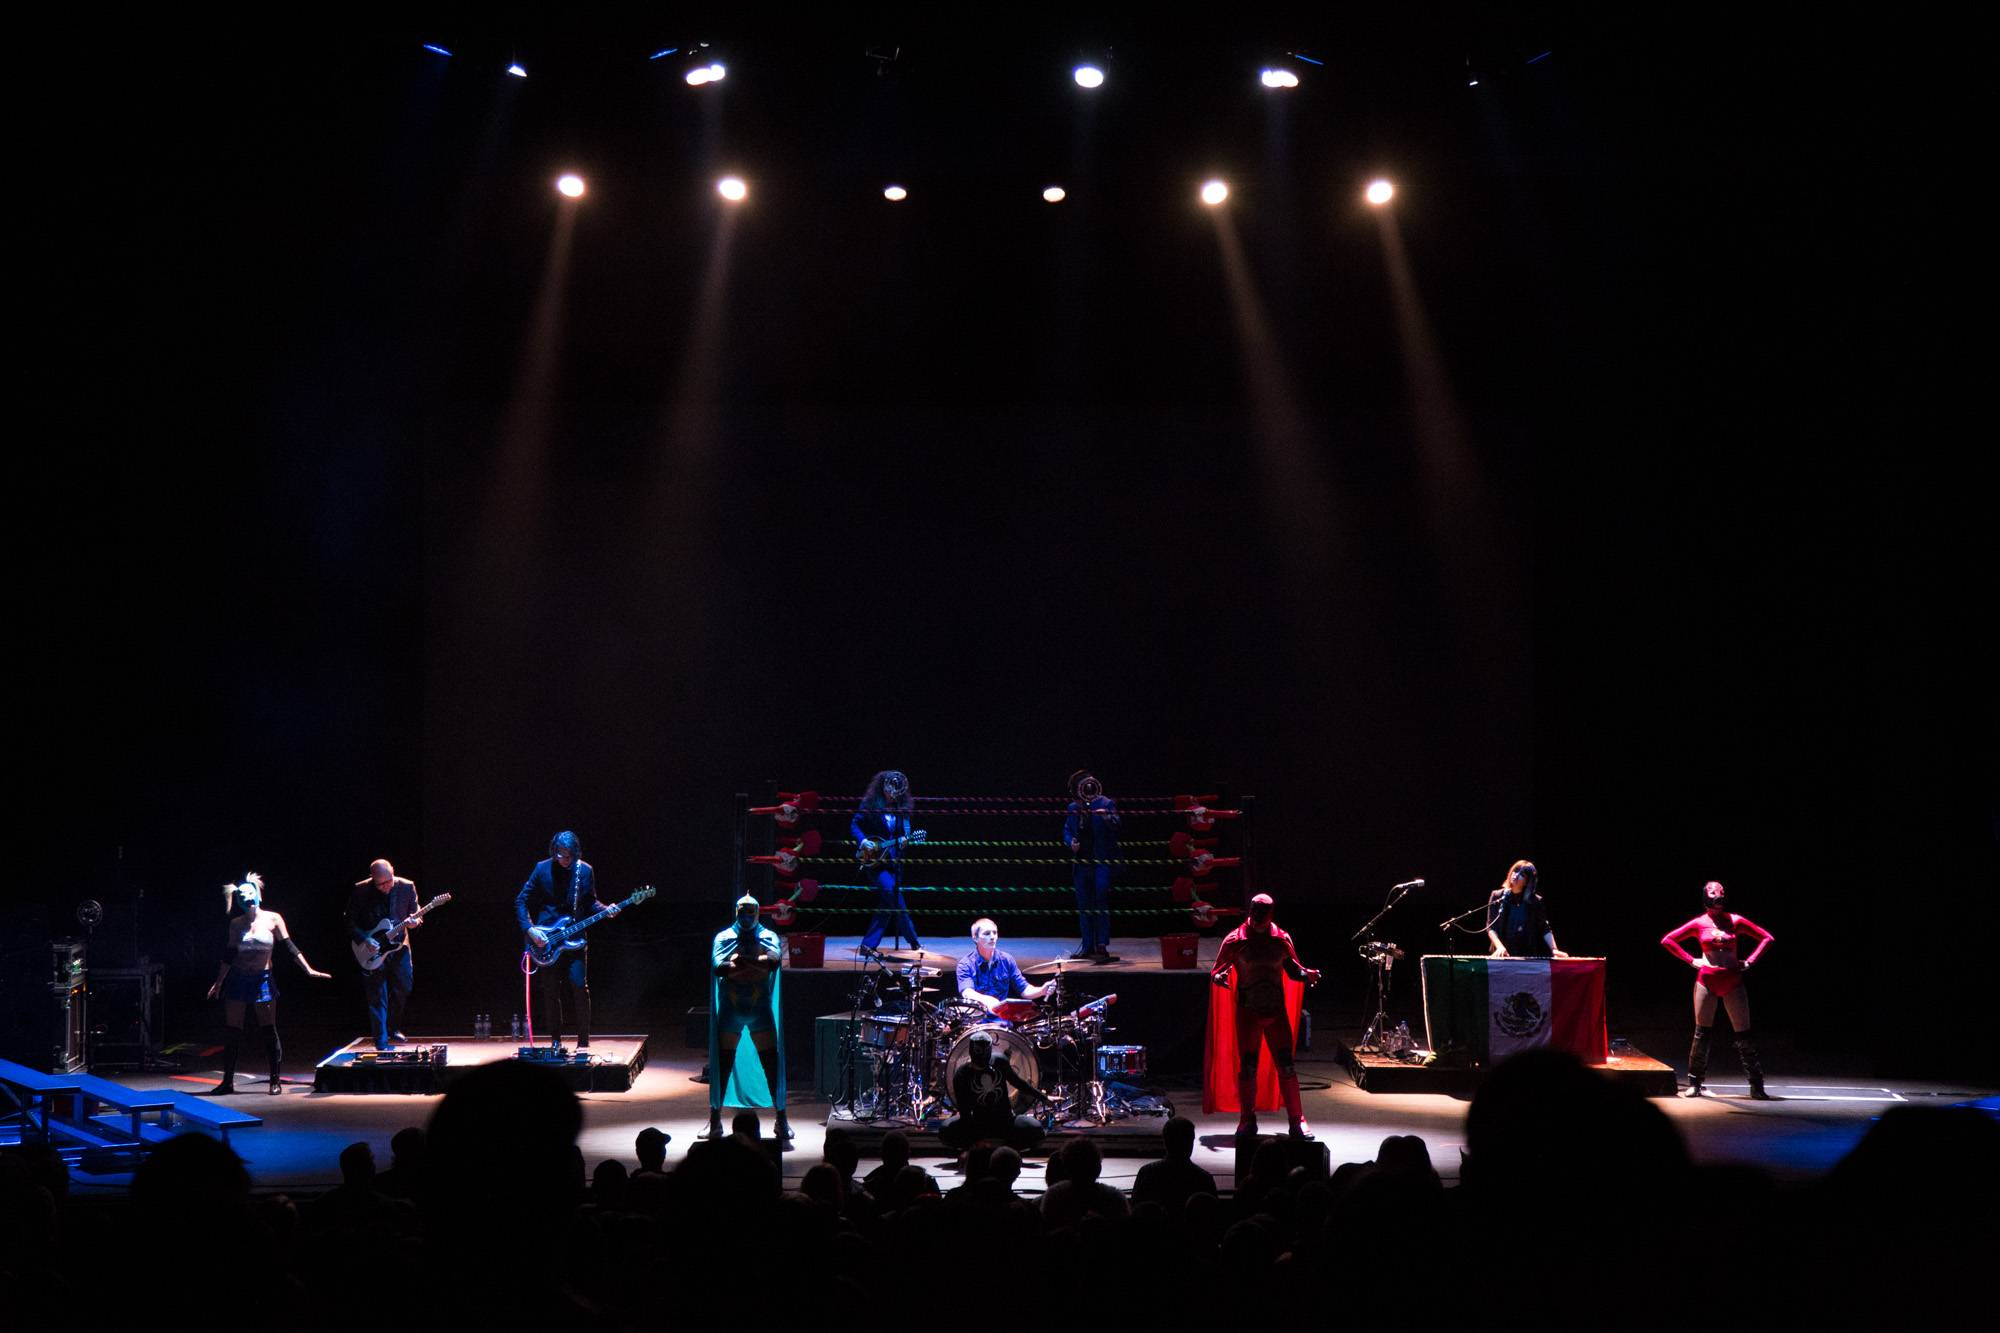 Puscifer at the Queen Elizabeth Theatre, Vancouver, Dec. 2 2015. Kirk Chantraine photo.